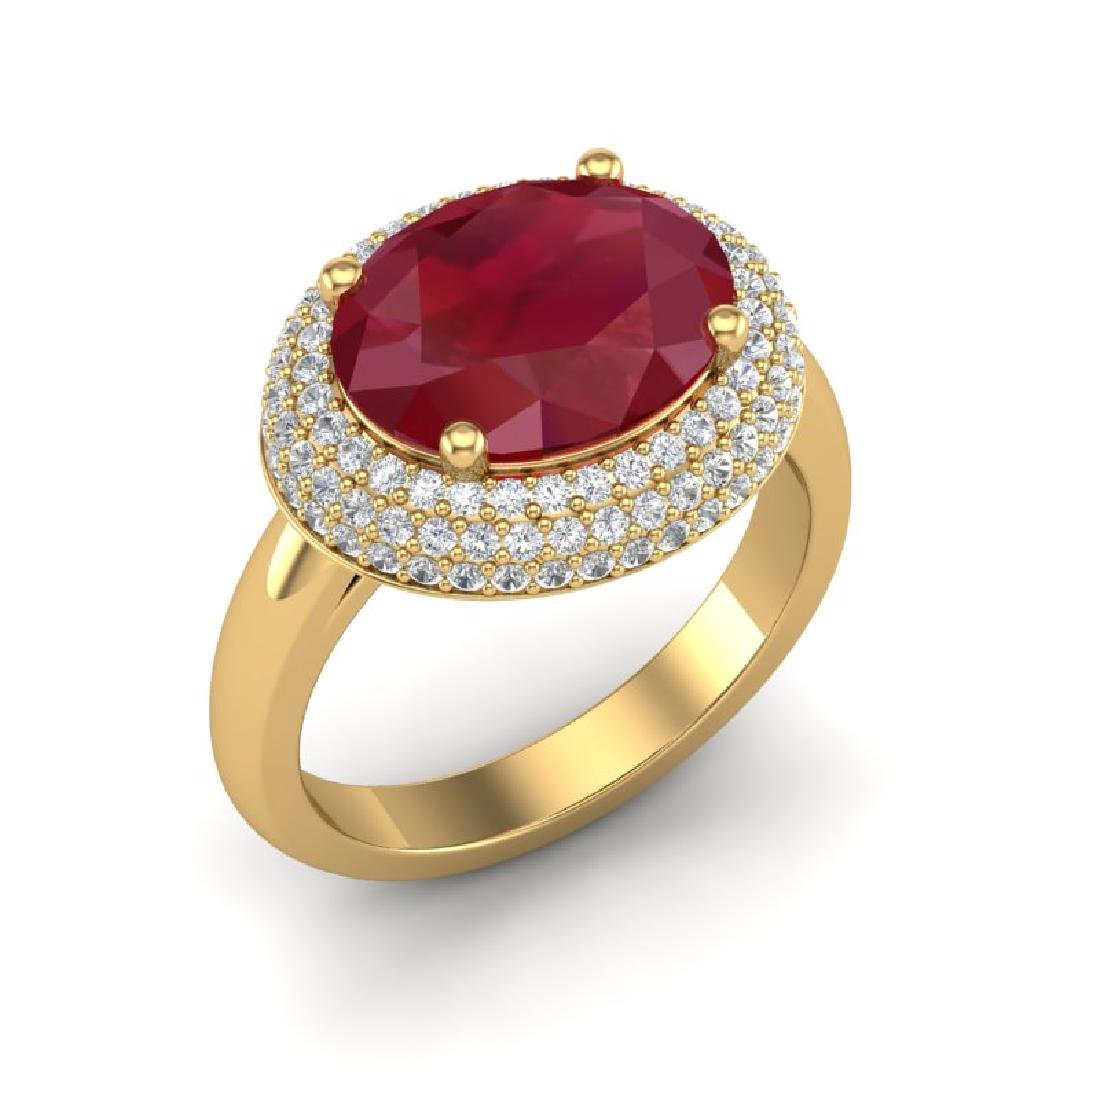 4.50 CTW Ruby & Micro Pave VS/SI Diamond Ring 18K